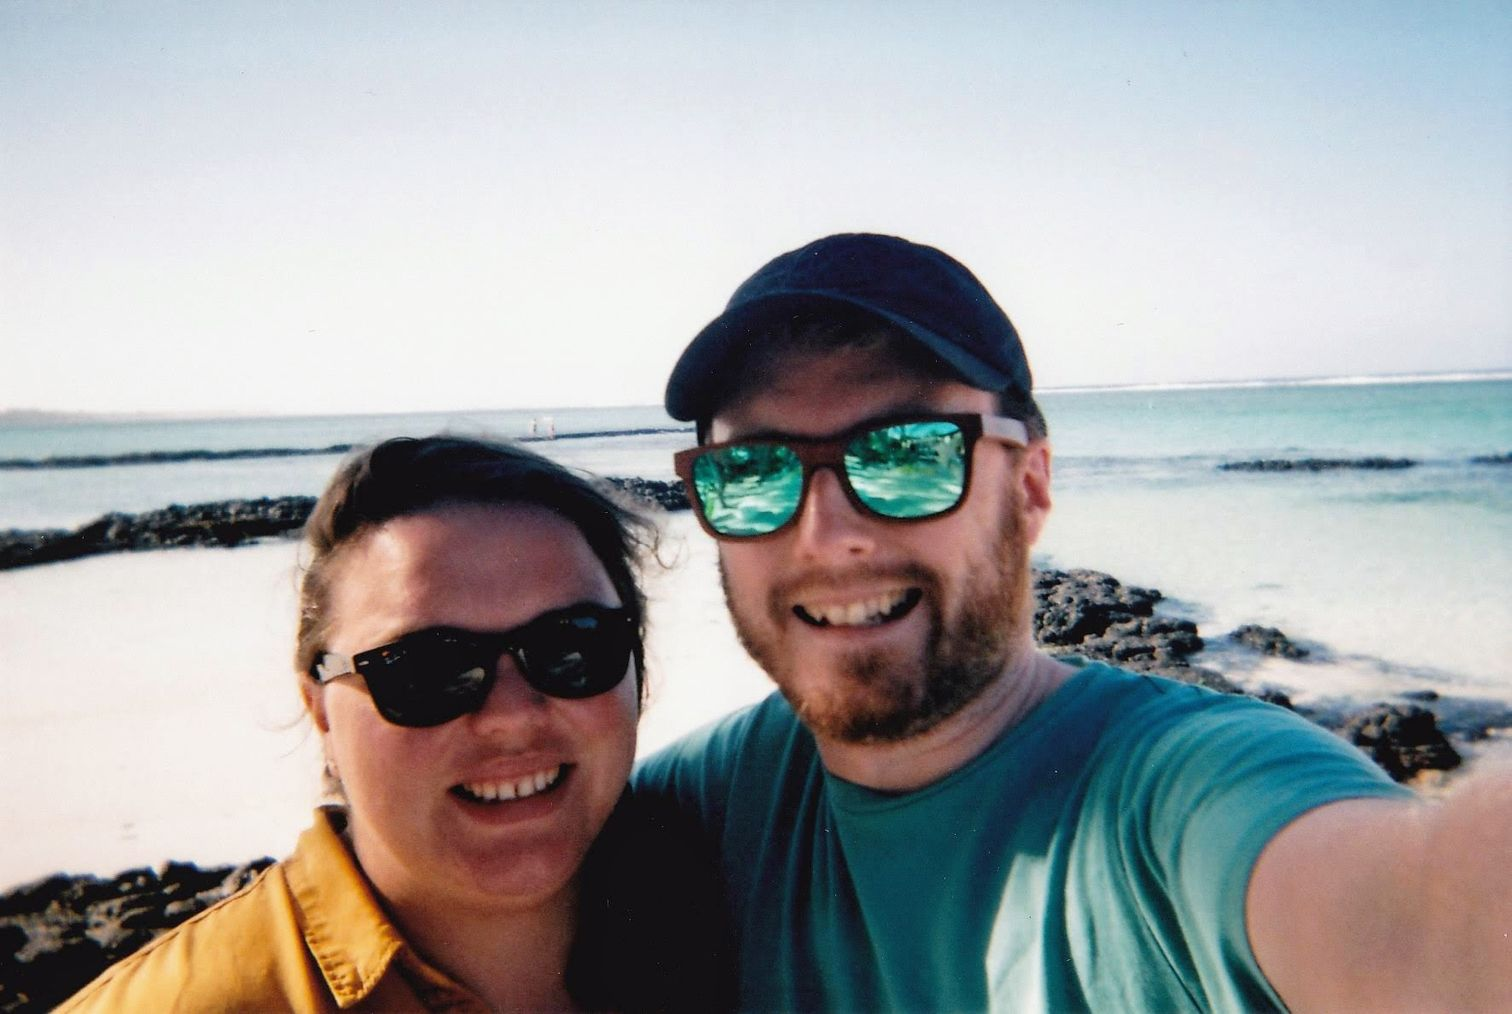 Alex and me on the beach (taken on the disposable camera)